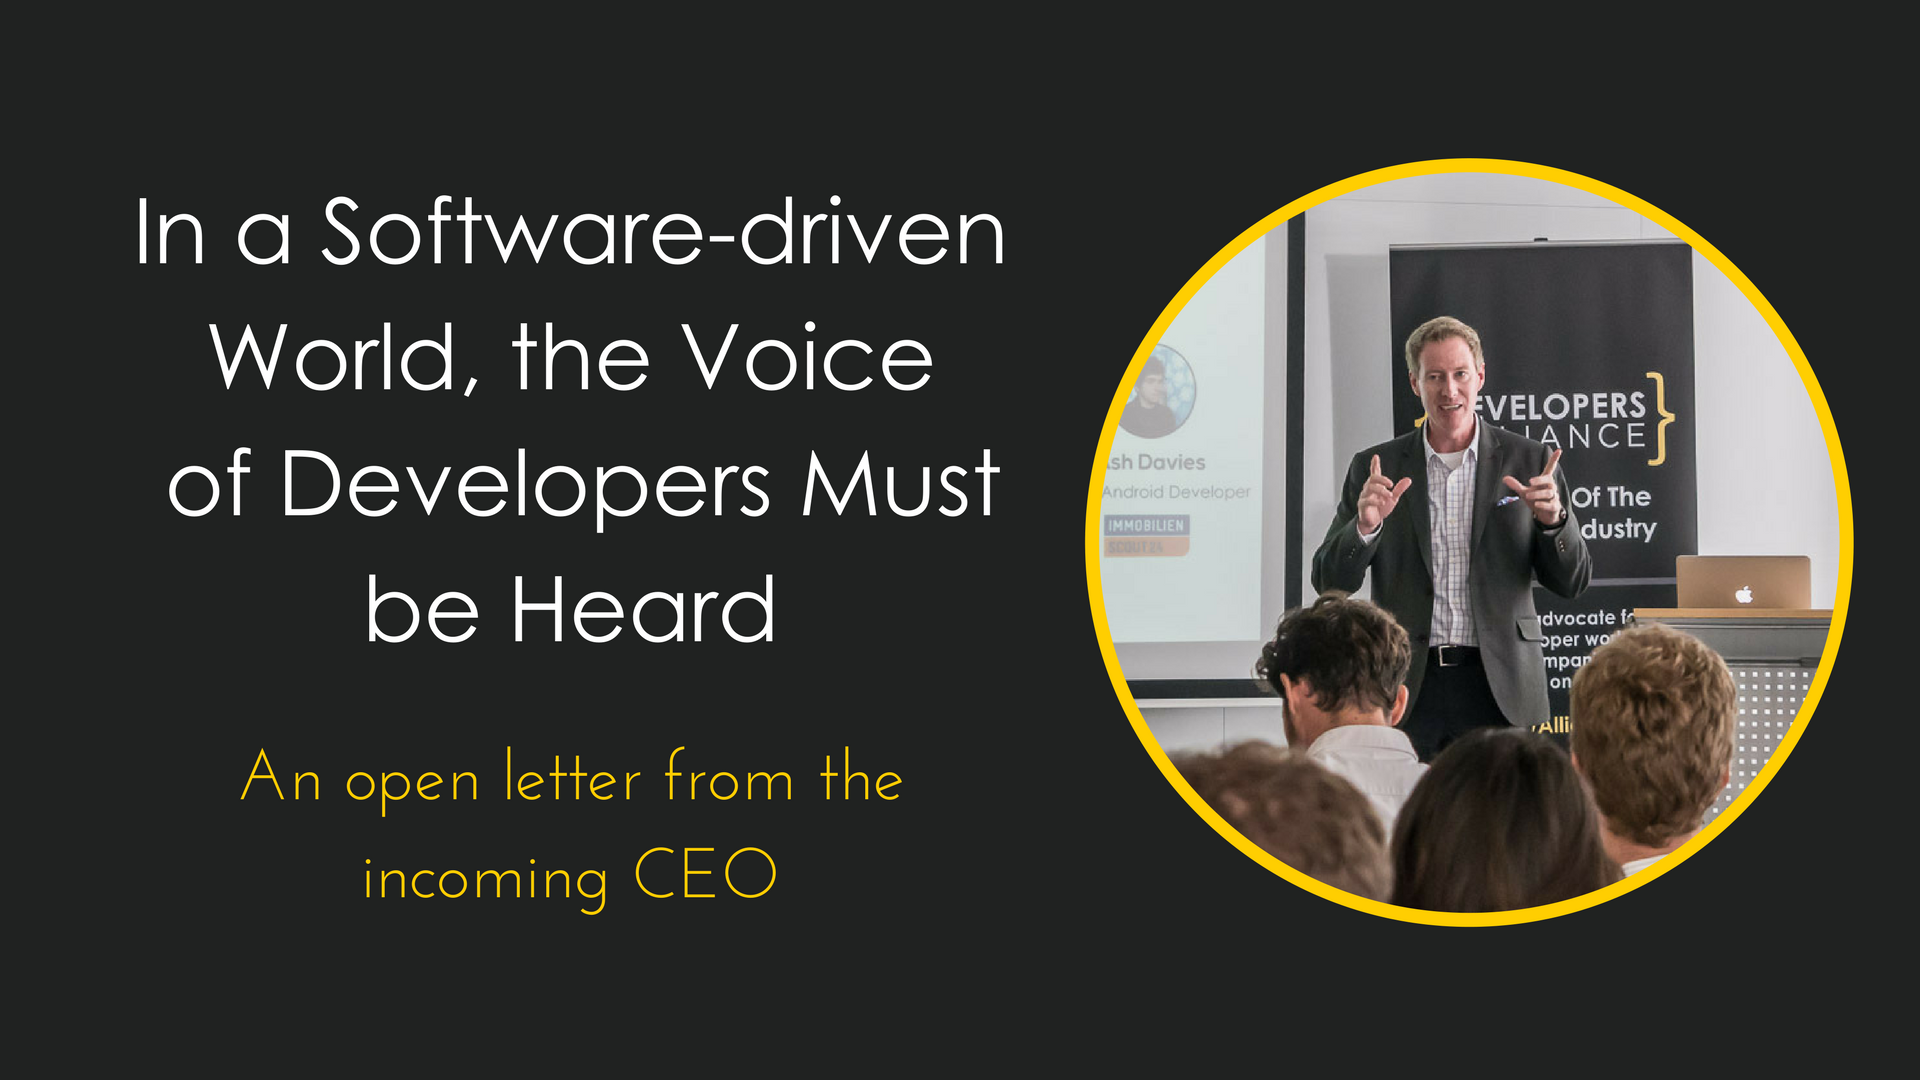 In a software-driven world, the voice of Developers must be heard